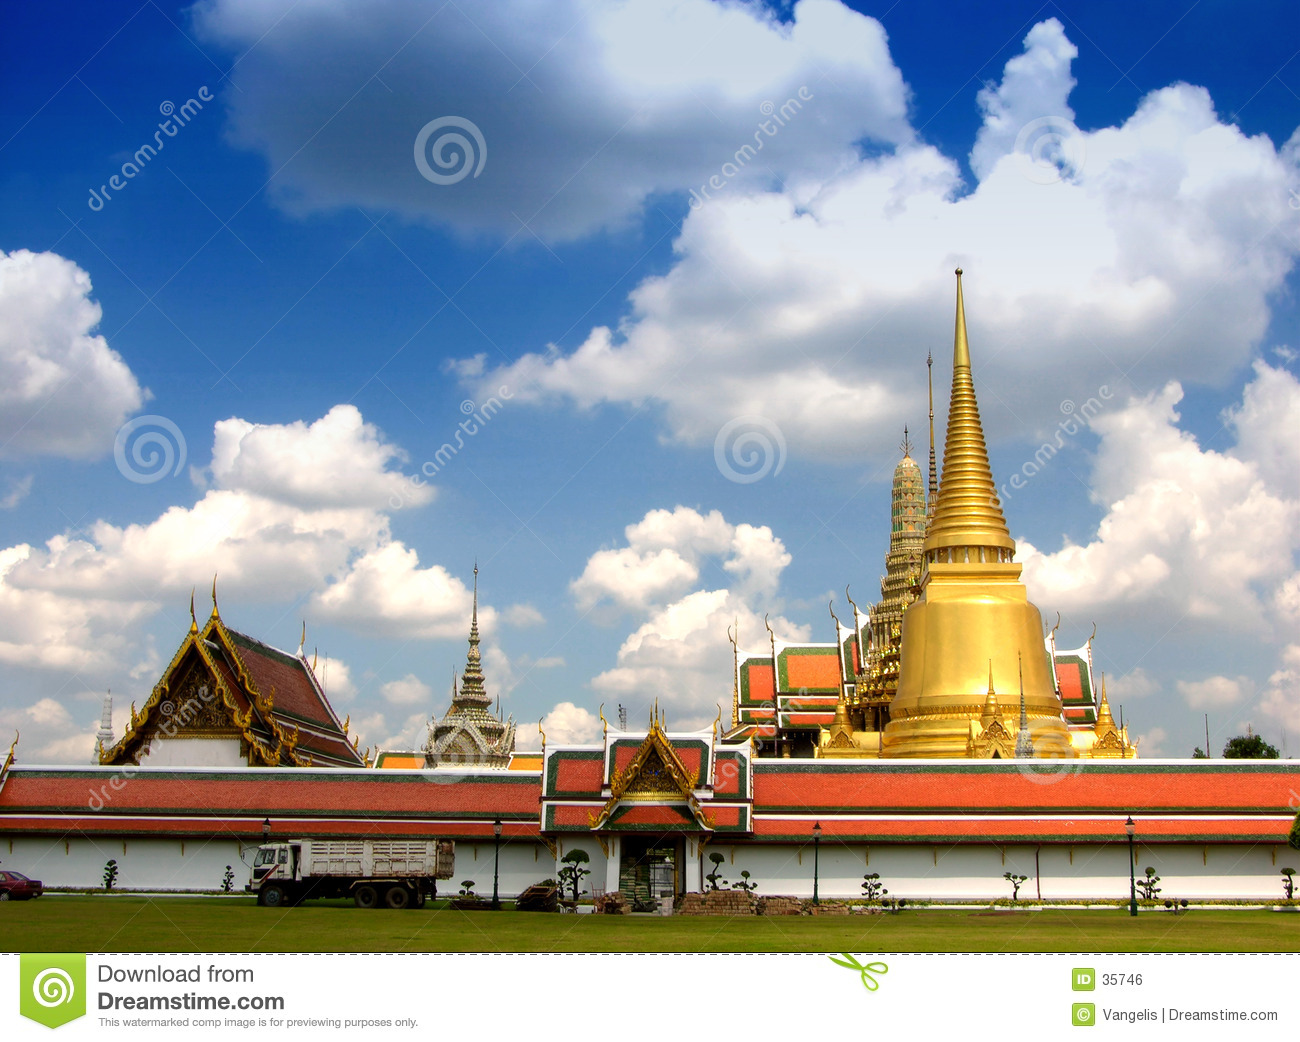 Fabulous Grand Palace and Wat Phra Kaeo - Bangkok, Thailand 3